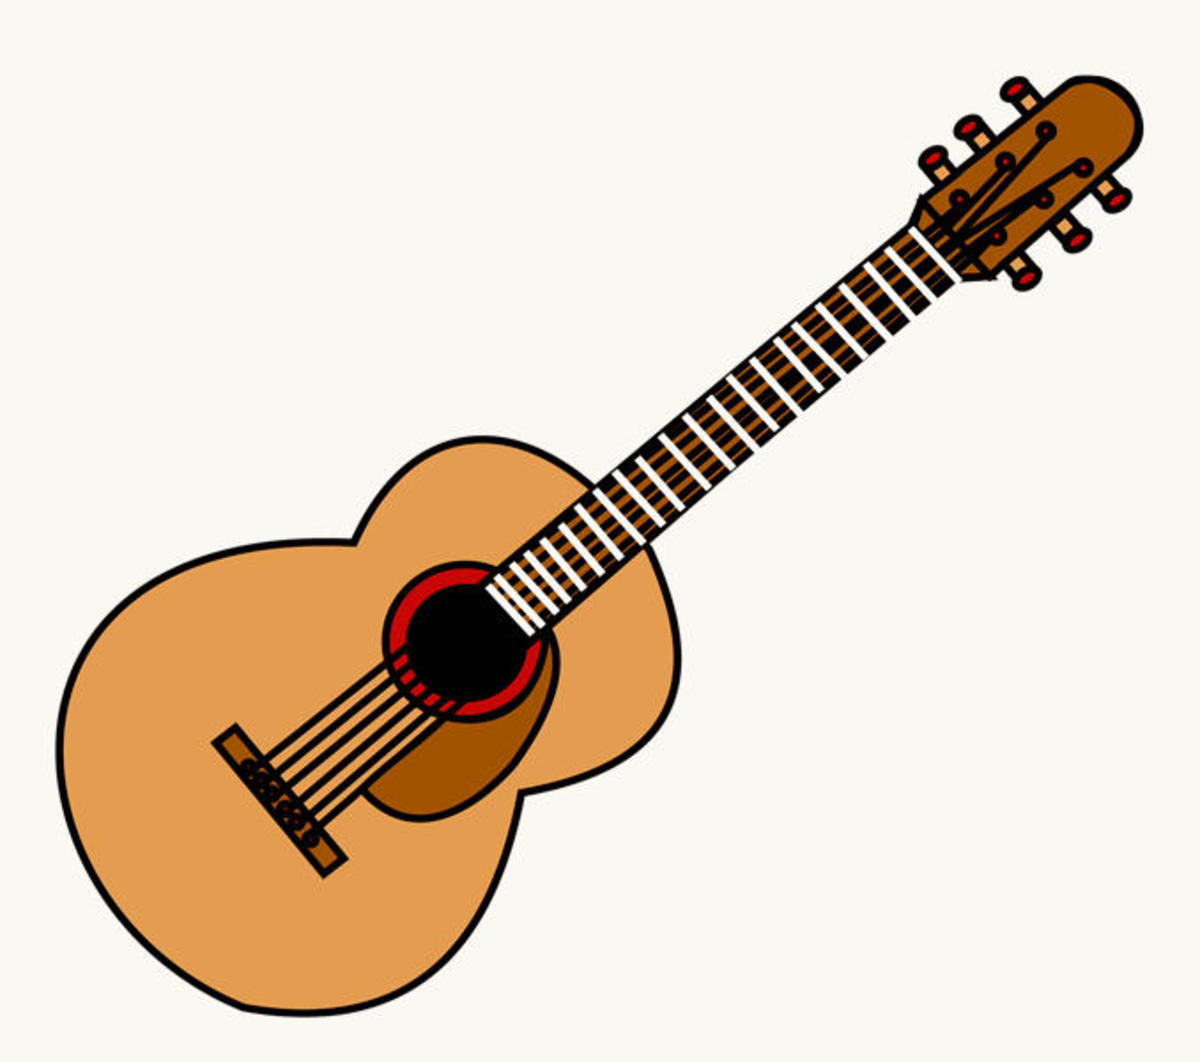 First step to learn how play guitar